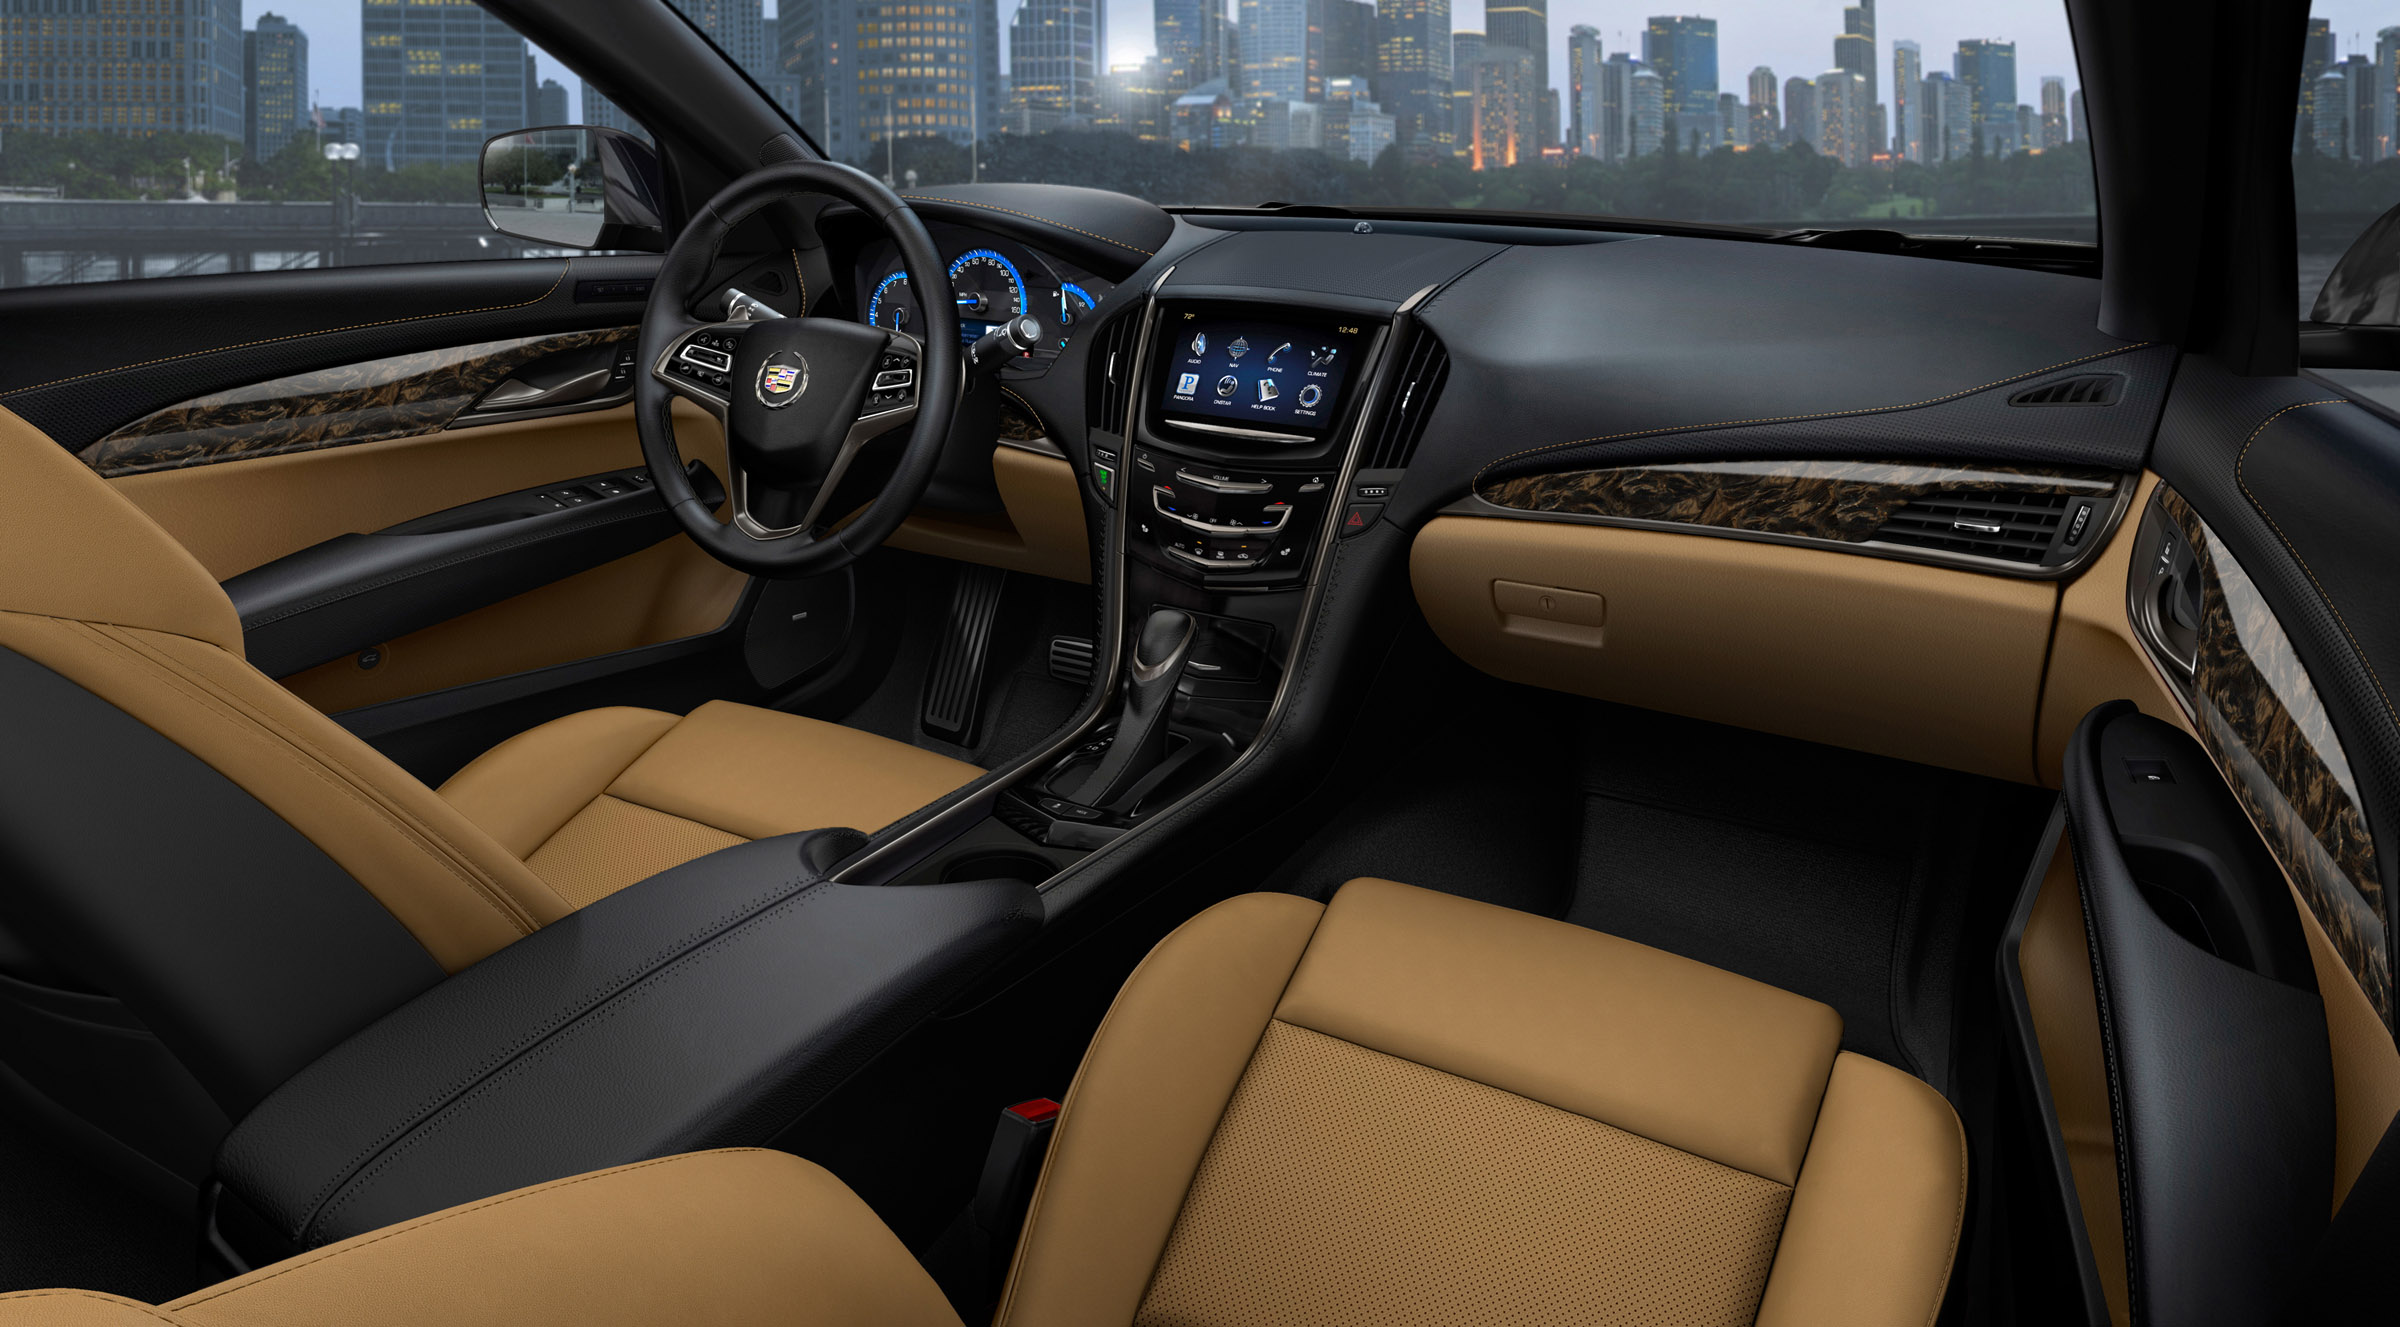 2013 Cadillac ATS - Picture 62807